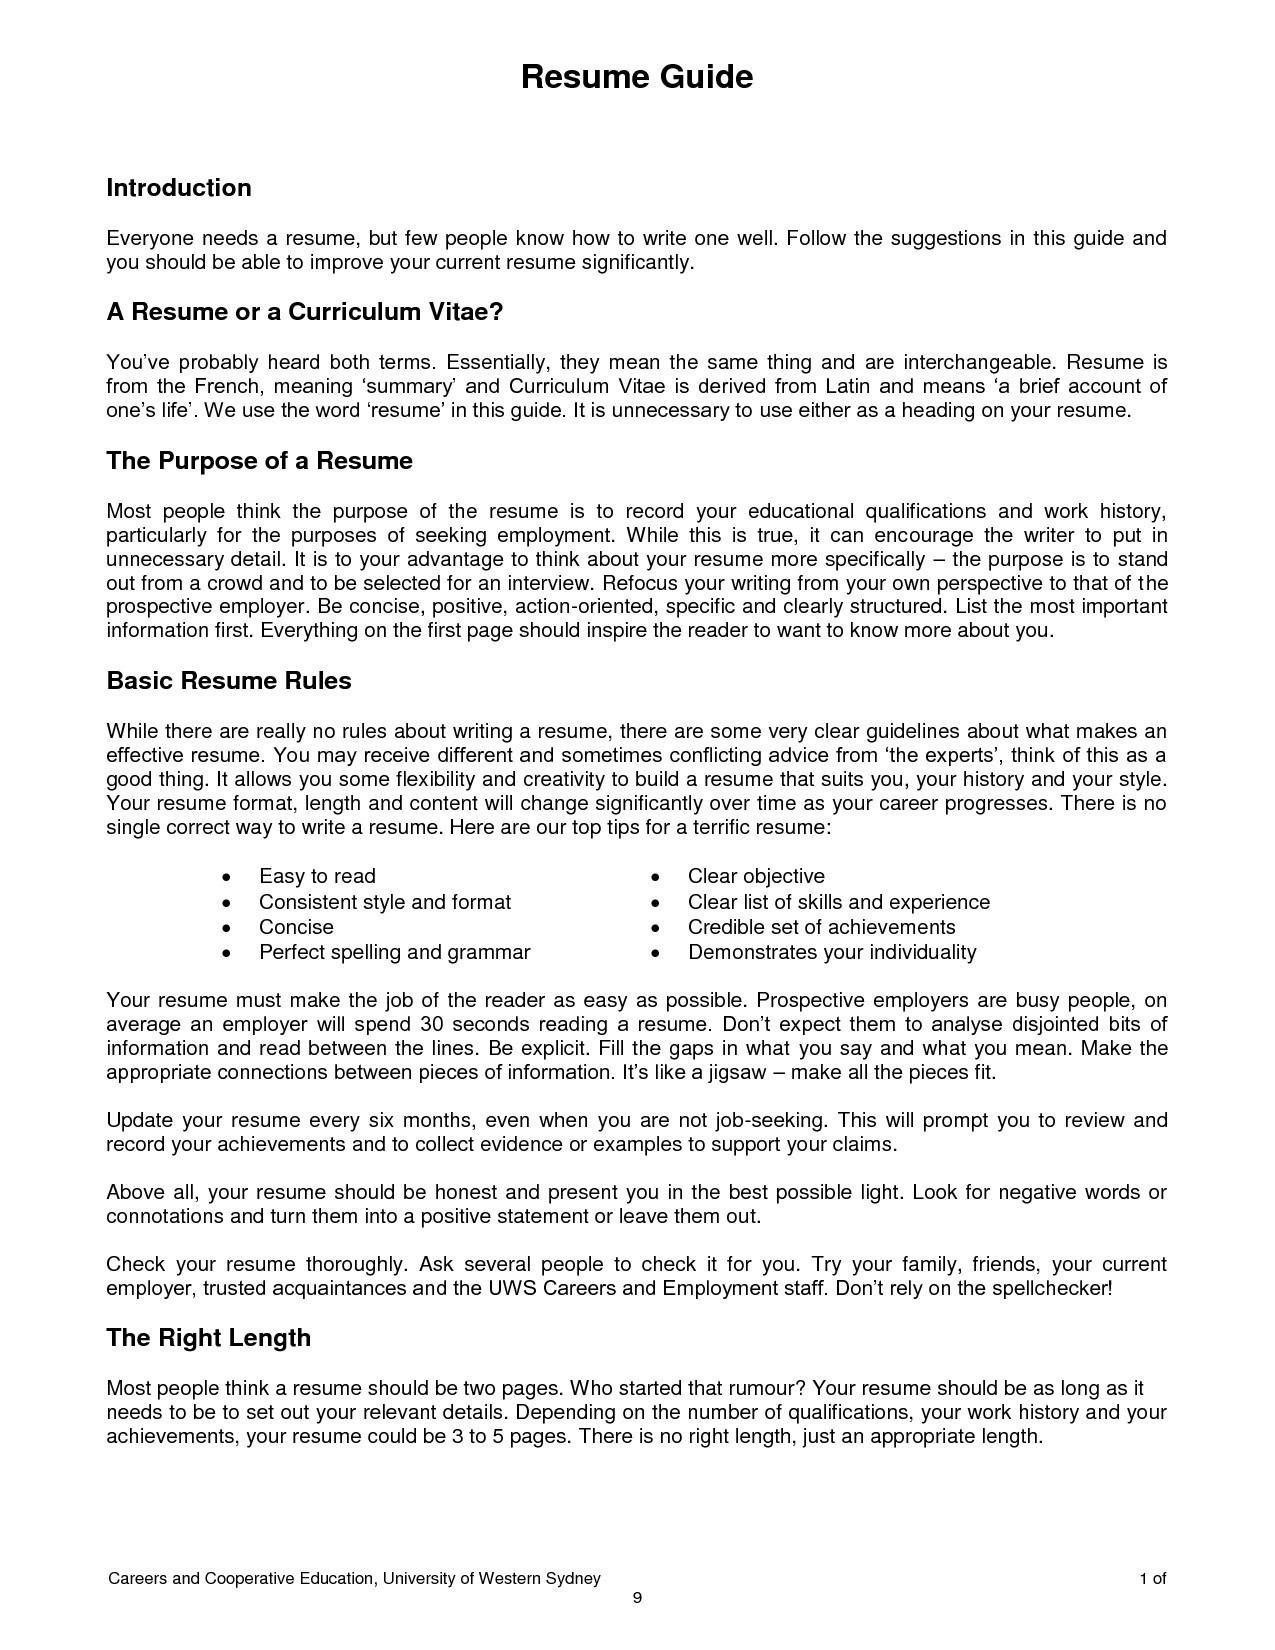 resume don ts example-Resume Don Ts 18 Resume Don Ts 4-o